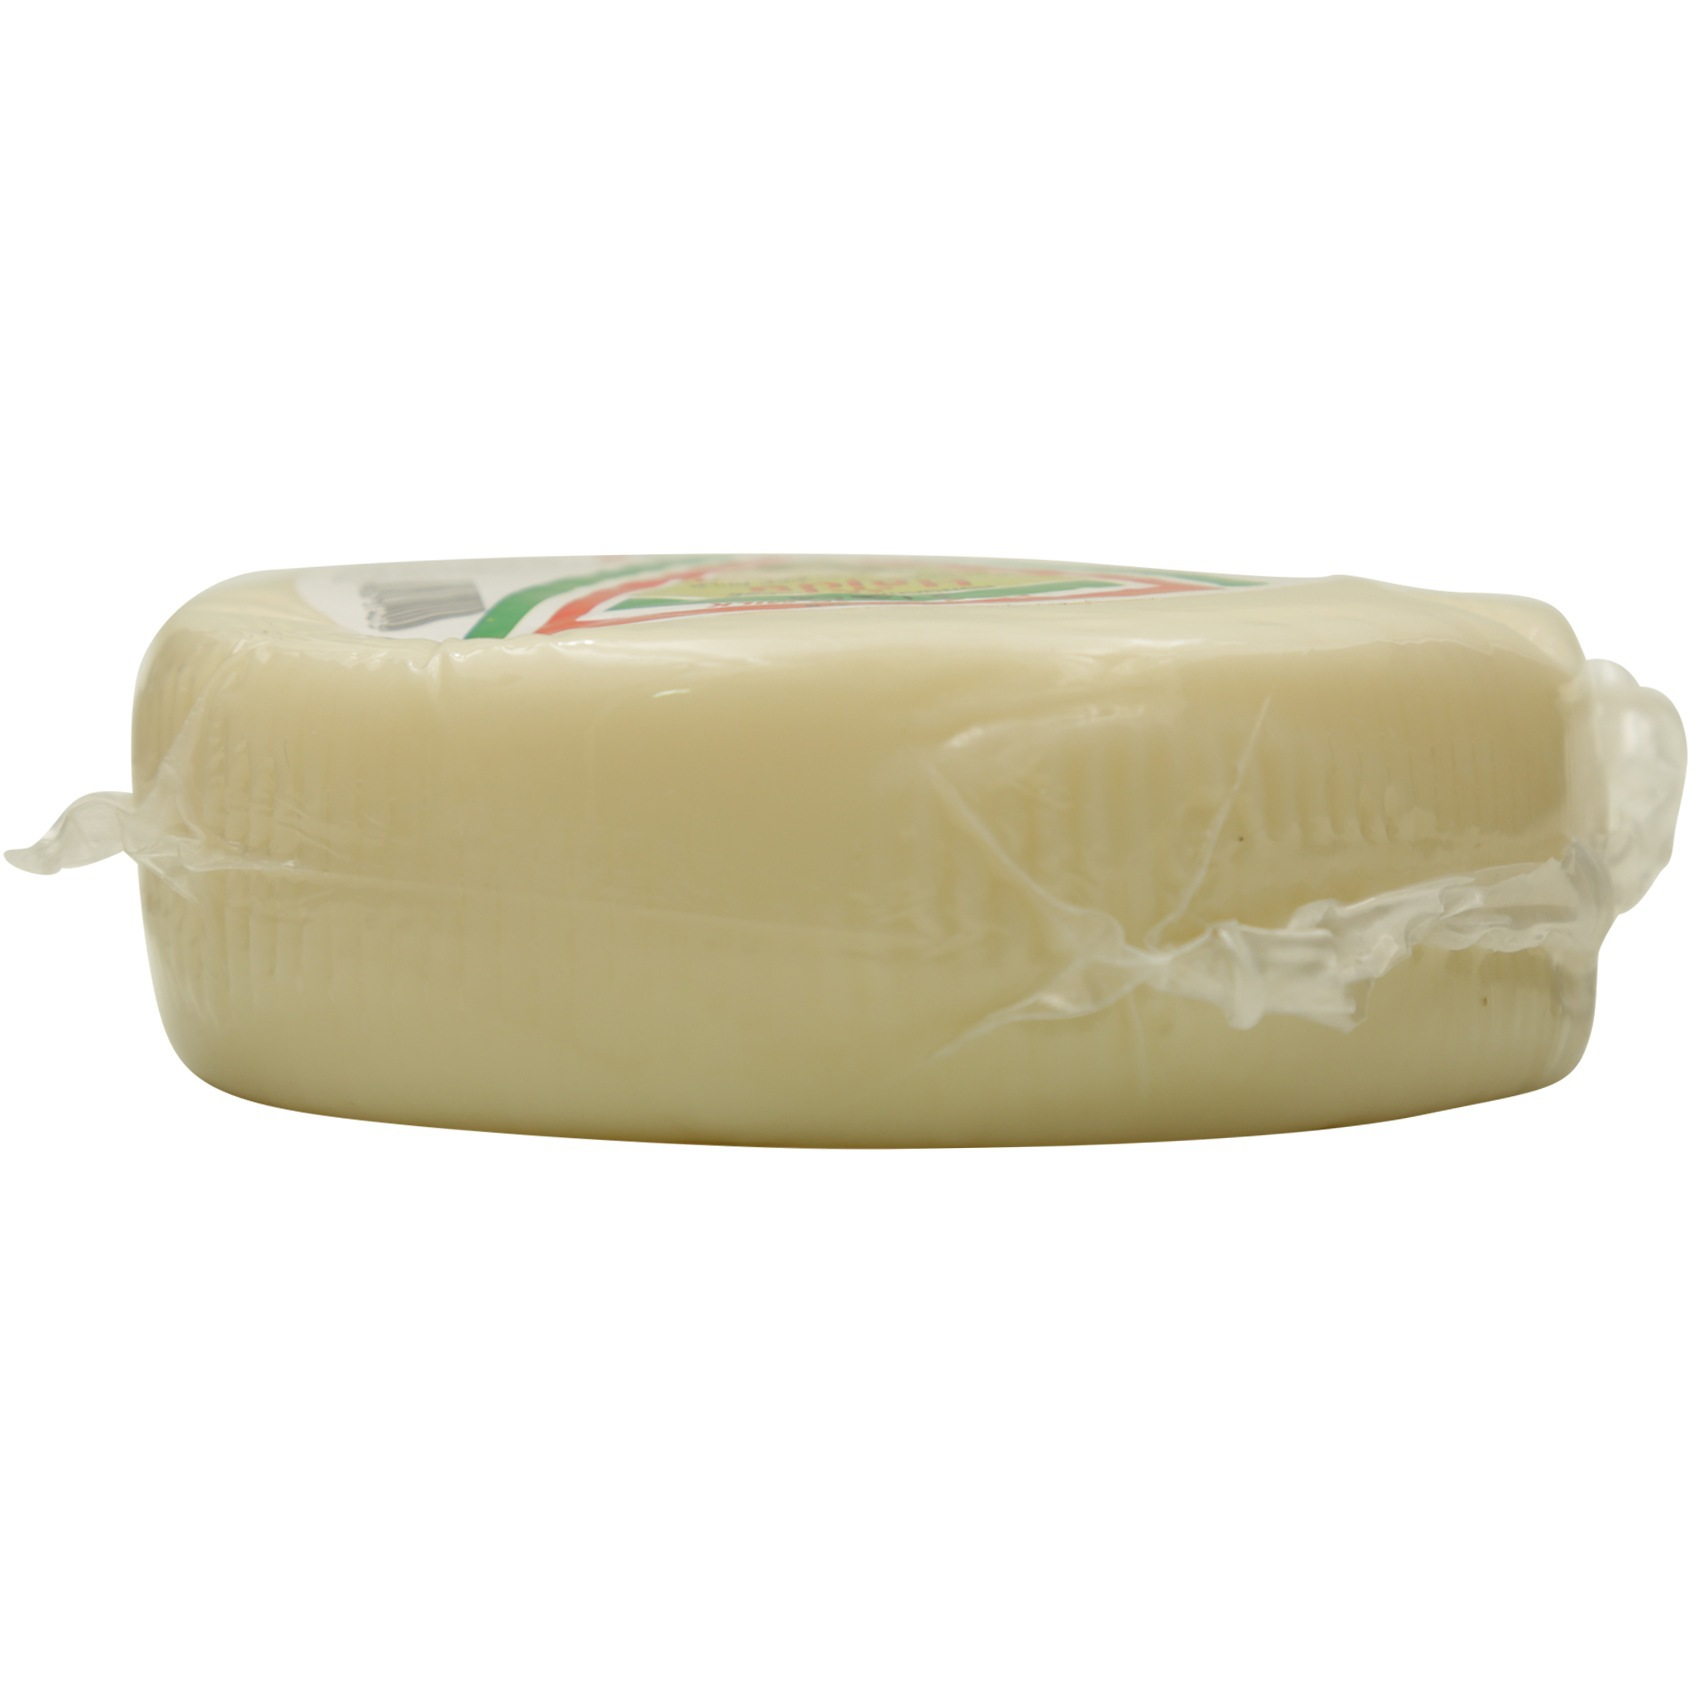 KASHKAVAL SHEEP MILK CHEESE 350G